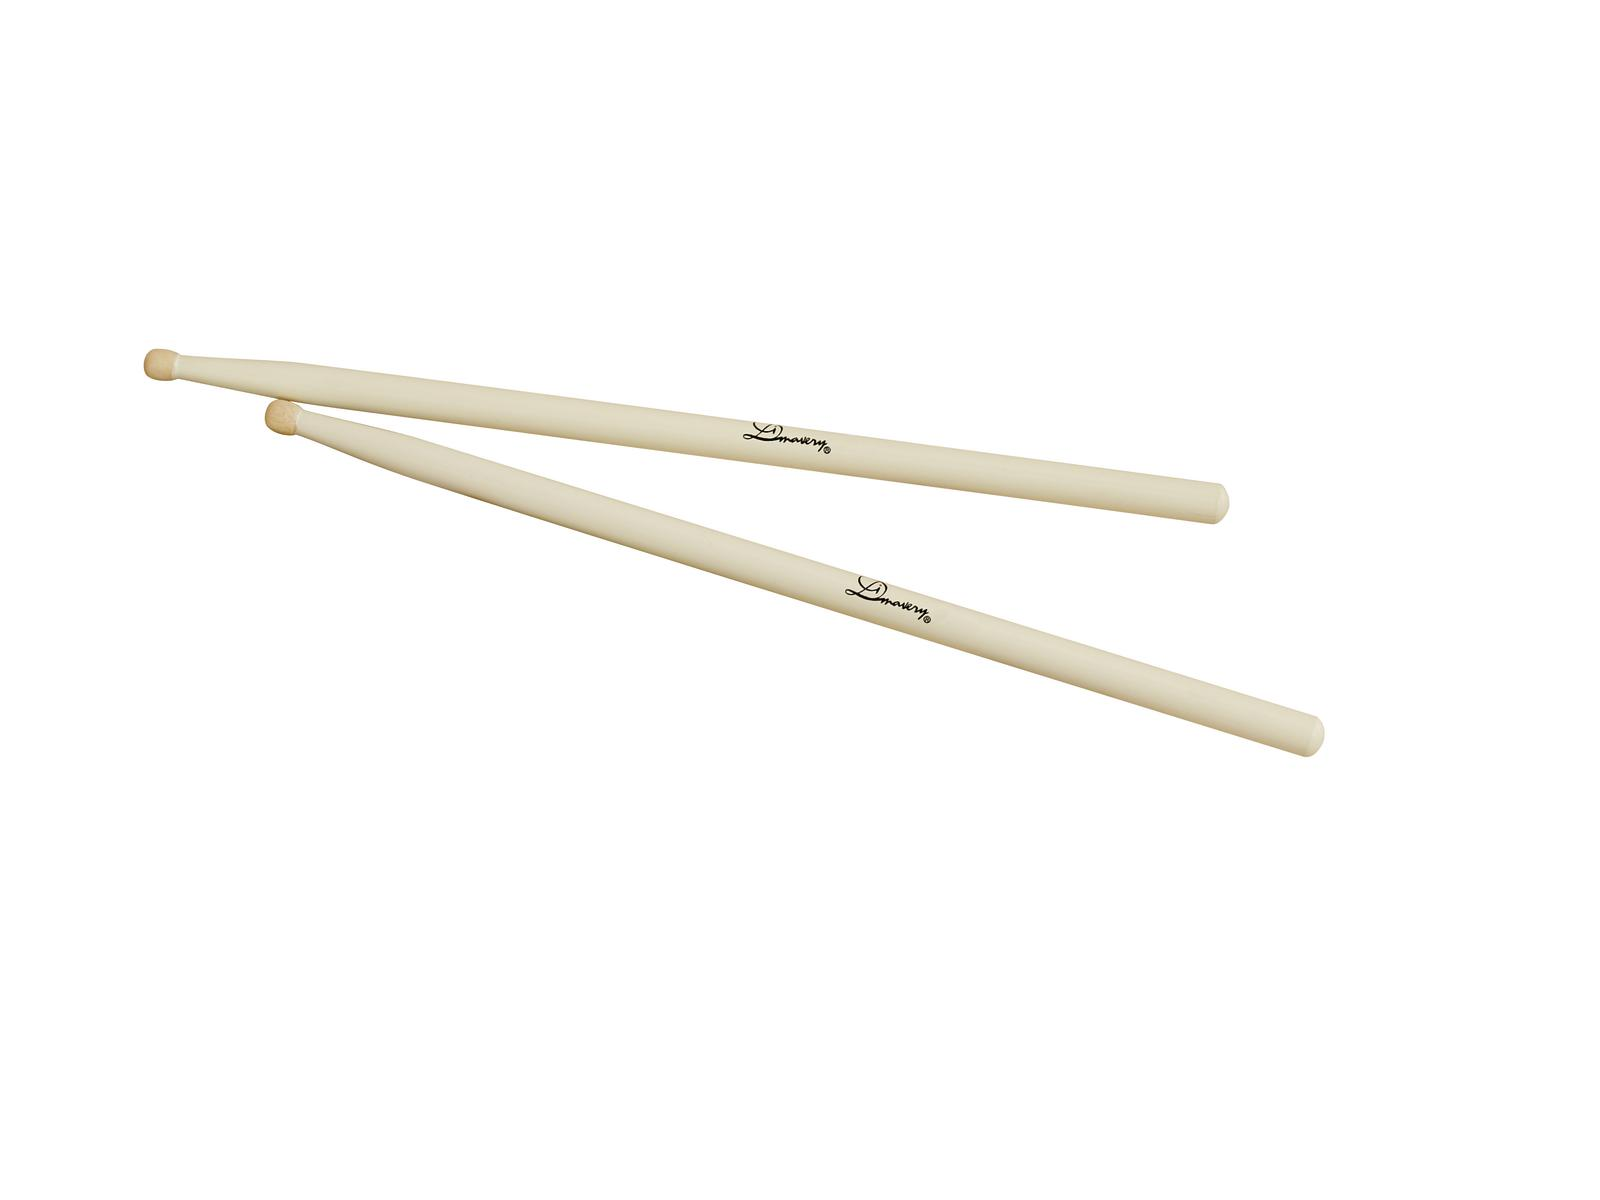 DIMAVERY DDS-Marchingsticks, a